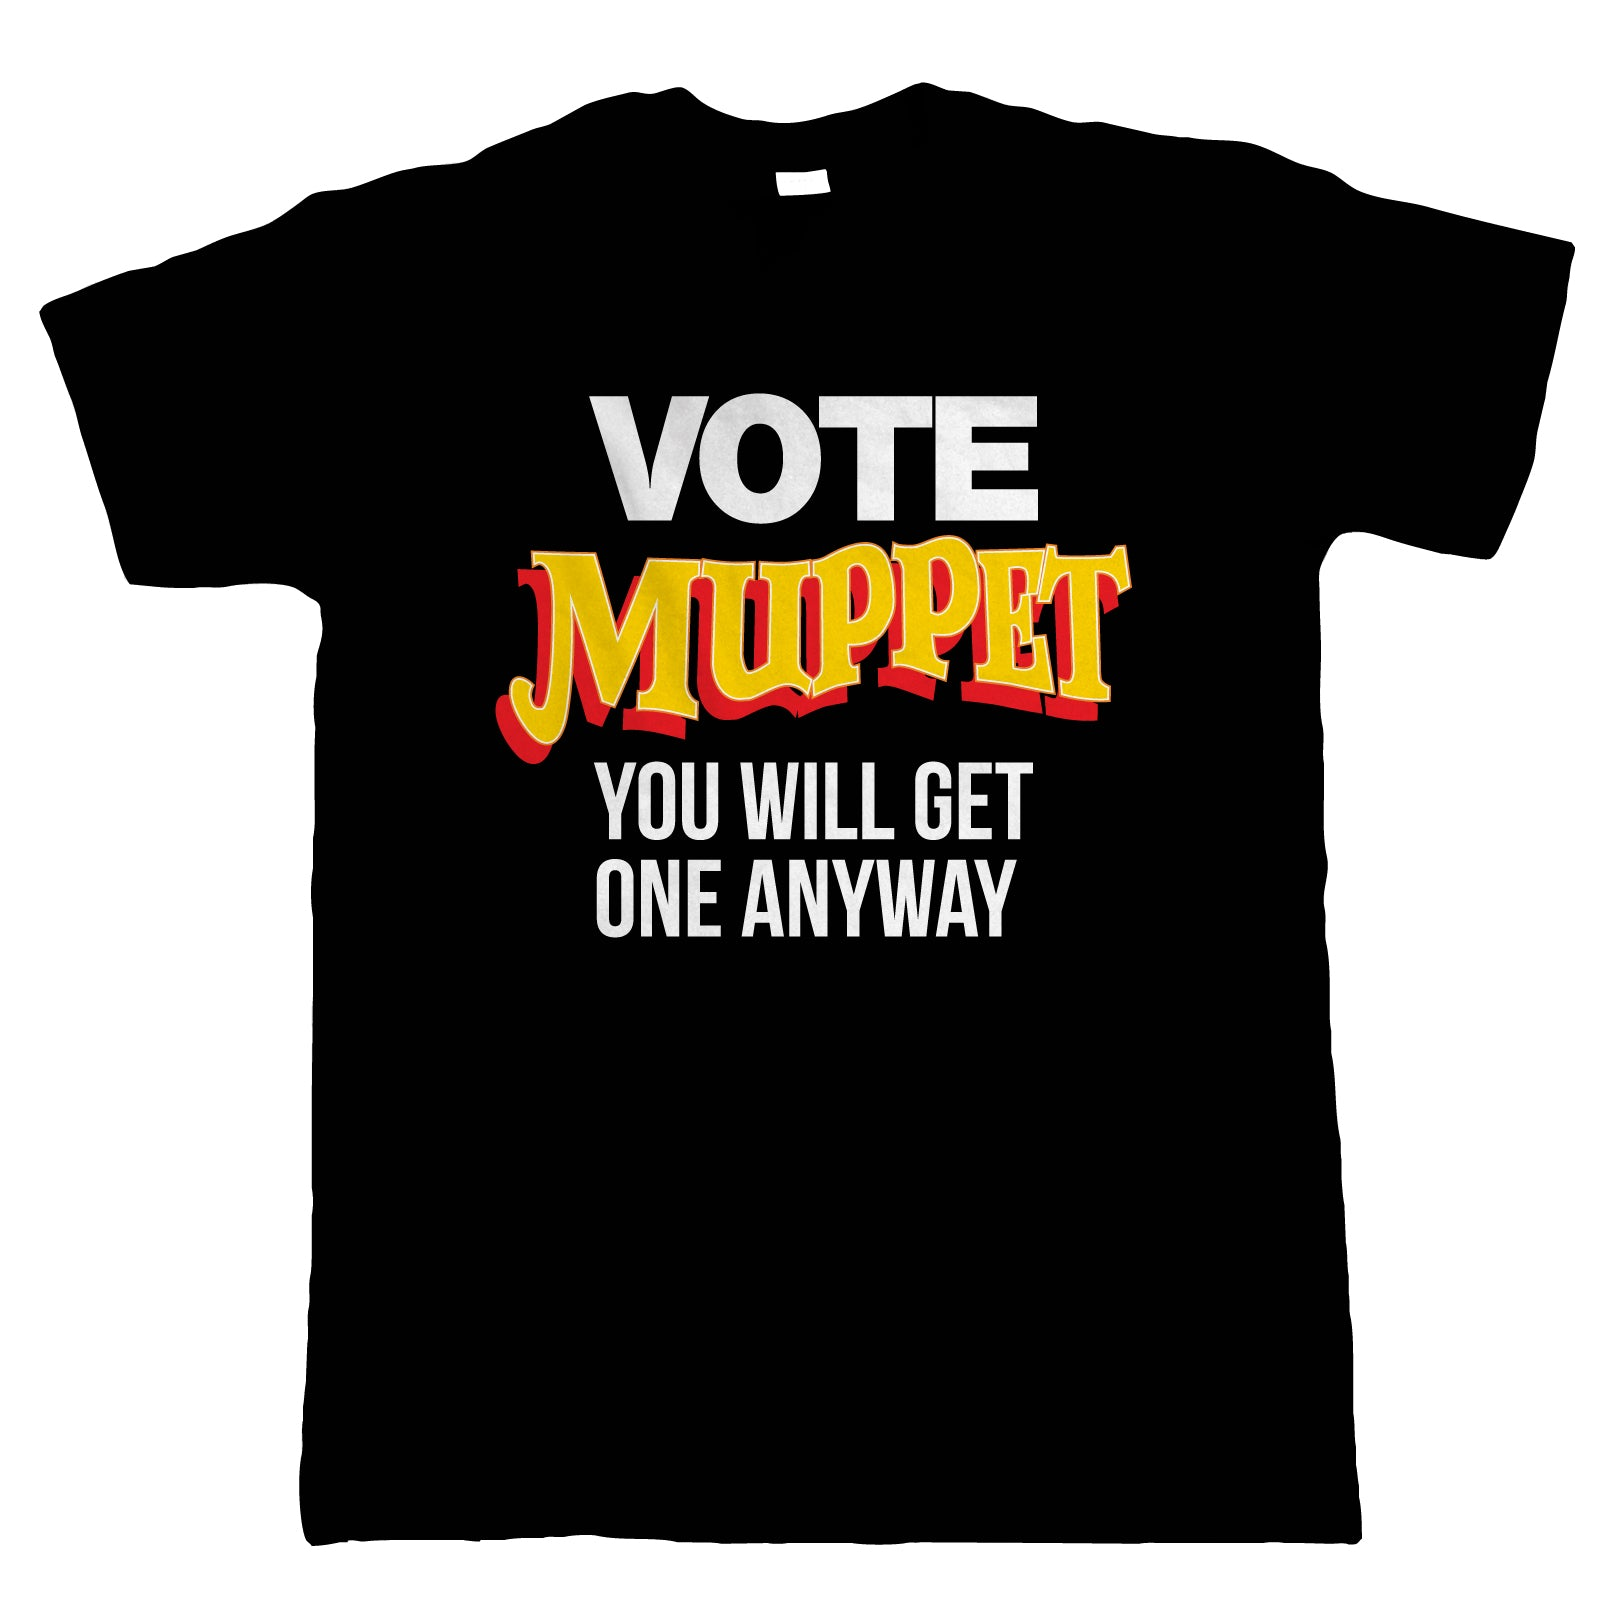 Vote Muppet Mens Political Joke T-Shirt | Humour Laughter Sarcasm Jokes Messing Comedy | Liberty Government Activist Dictatorship Socialist | Brexit British Parliament Protest